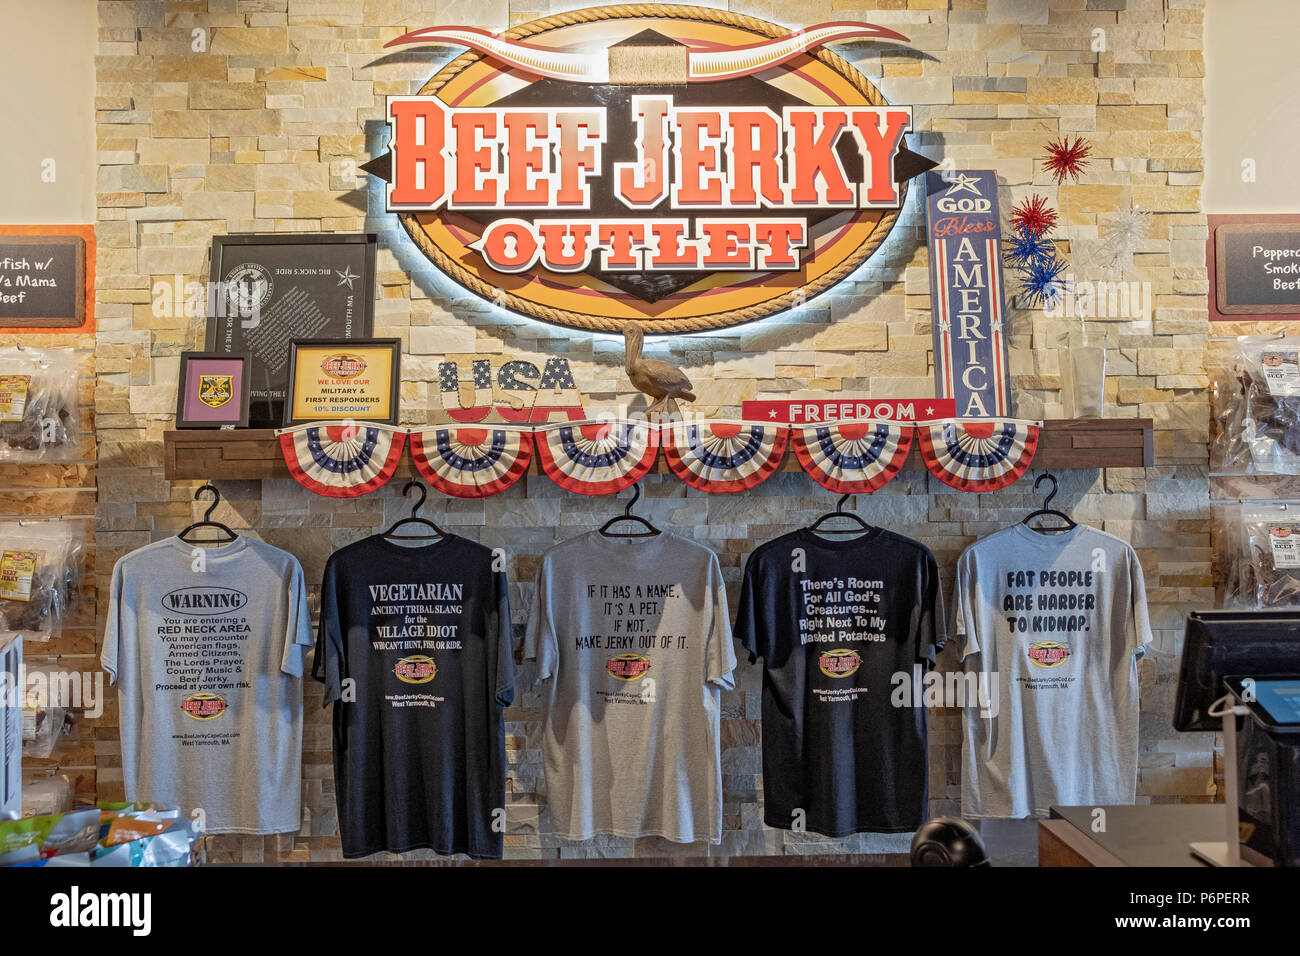 Tee shirts for sale at the BEEF JERKY OUTLET STORE in West Yarmouth, MA. - Stock Image